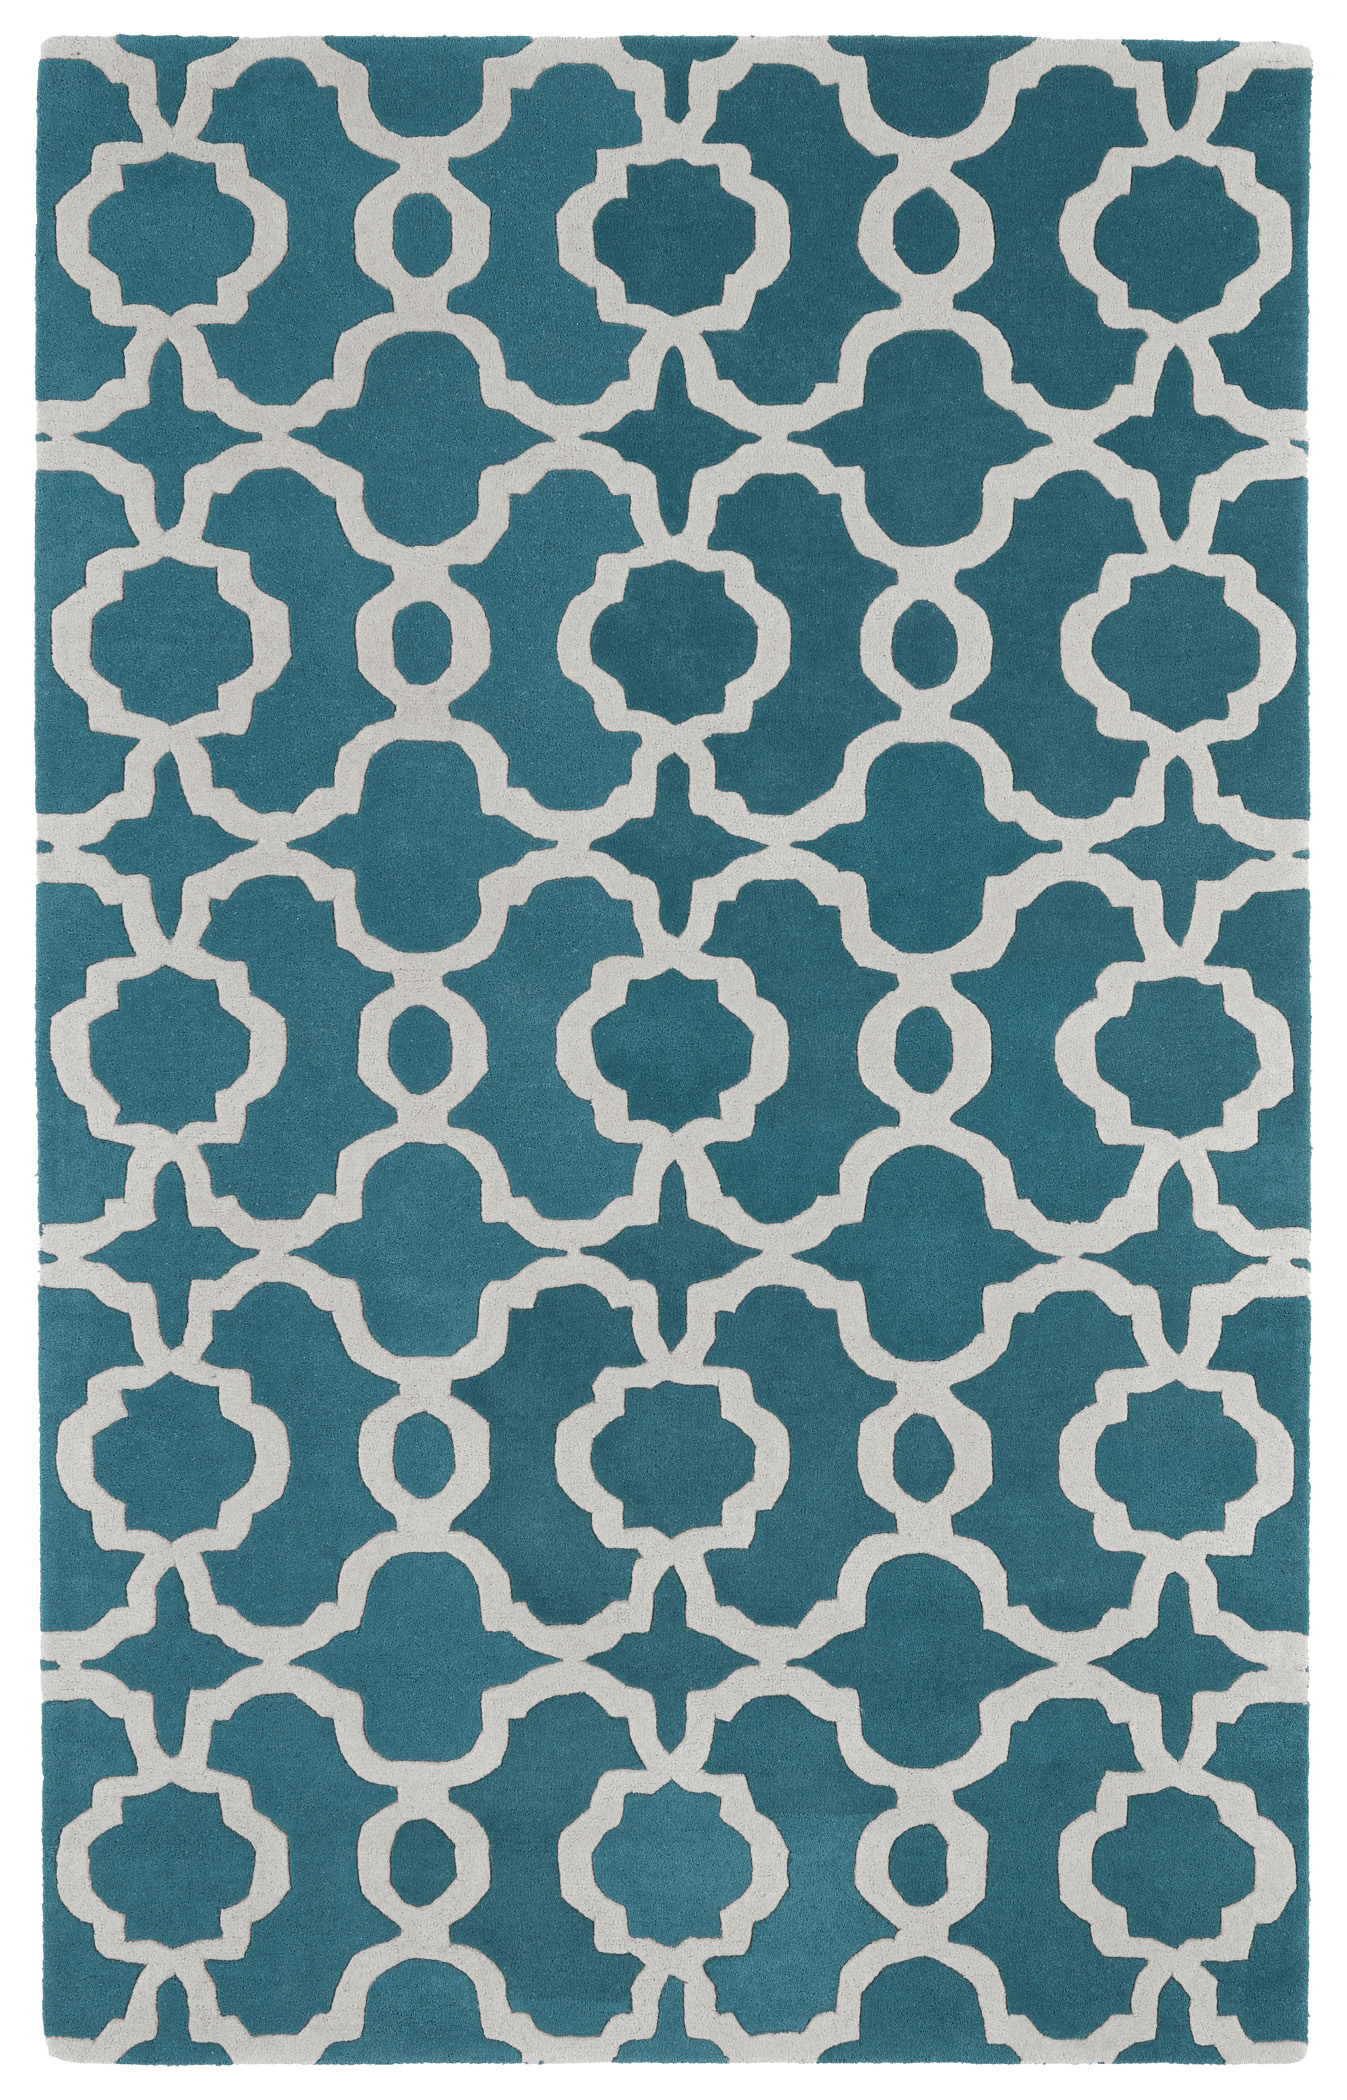 Kaleen Revolution REV03 91 Teal Rug